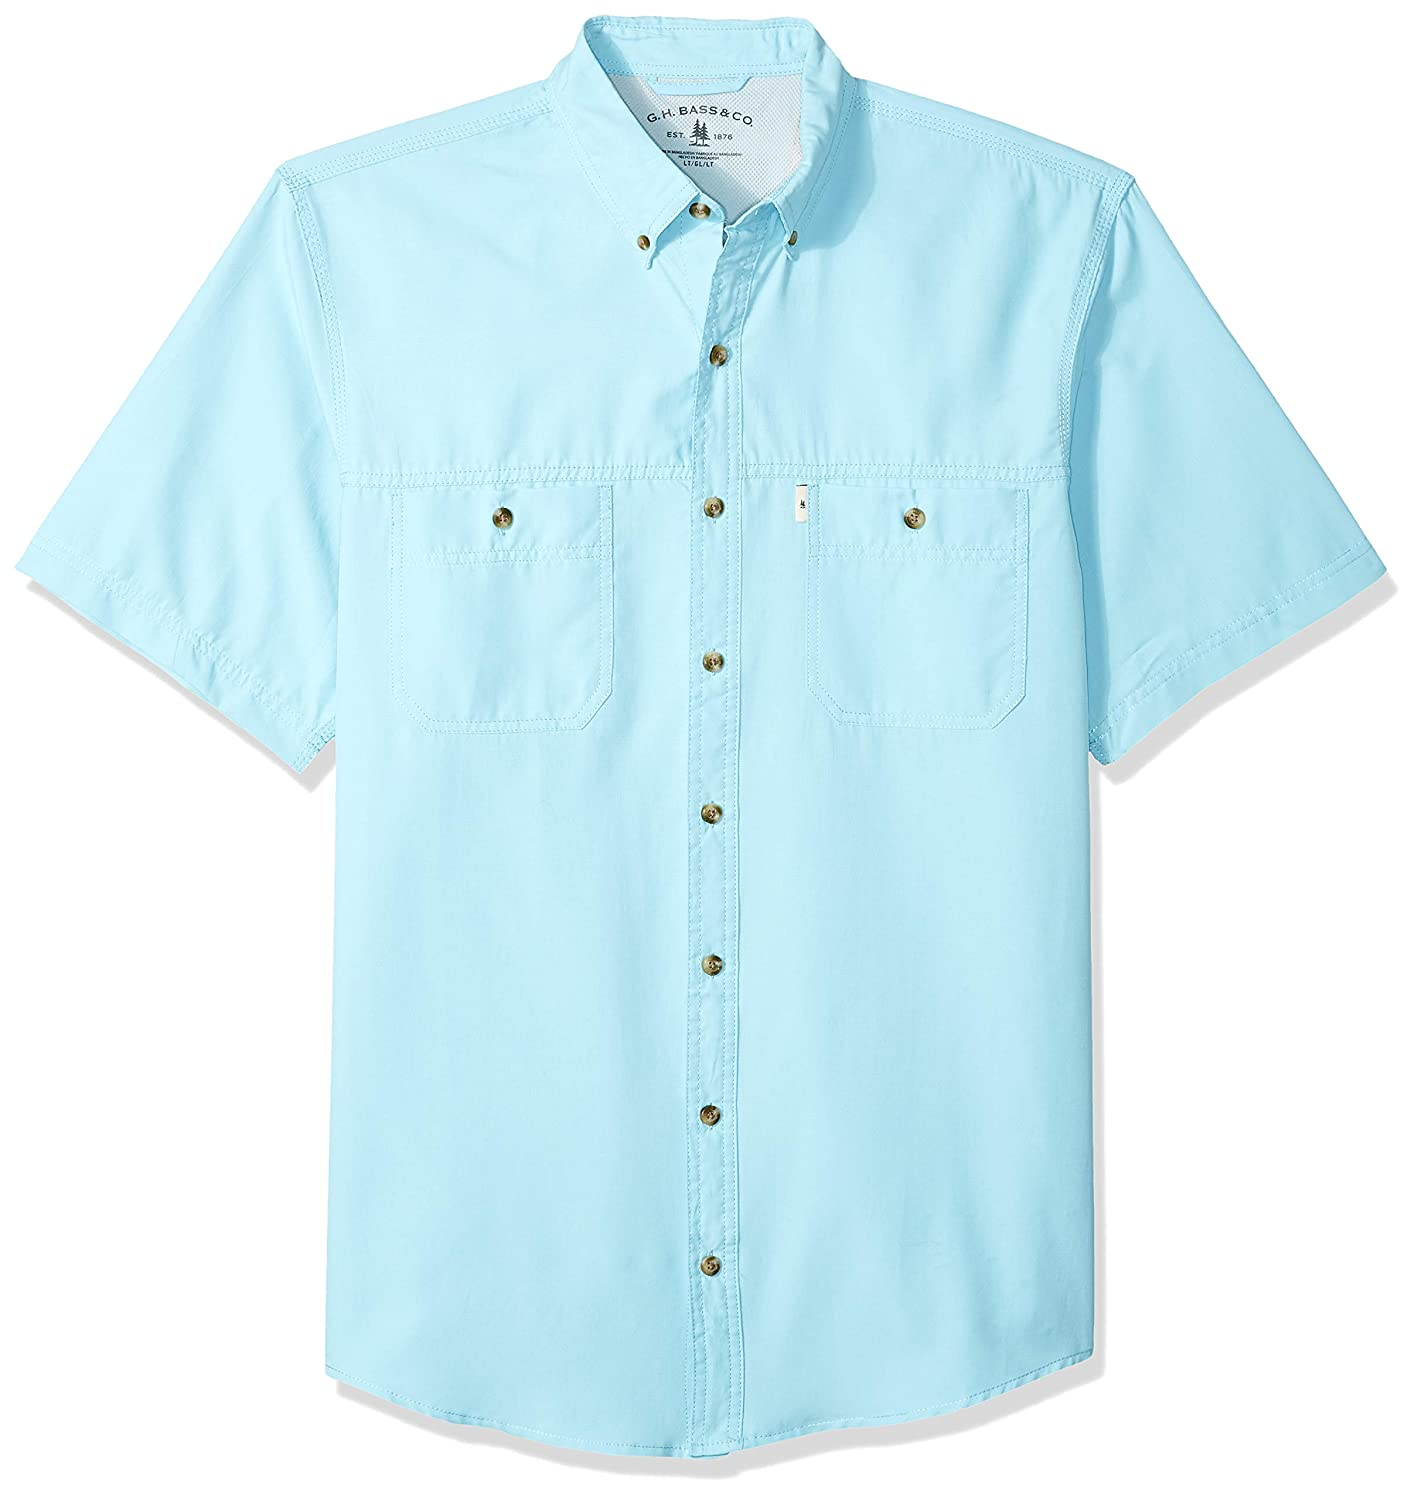 Bass /& Co G.H Mens Big and Tall Explorer Short Sleeve Fishing Shirt Solid Button Pocket